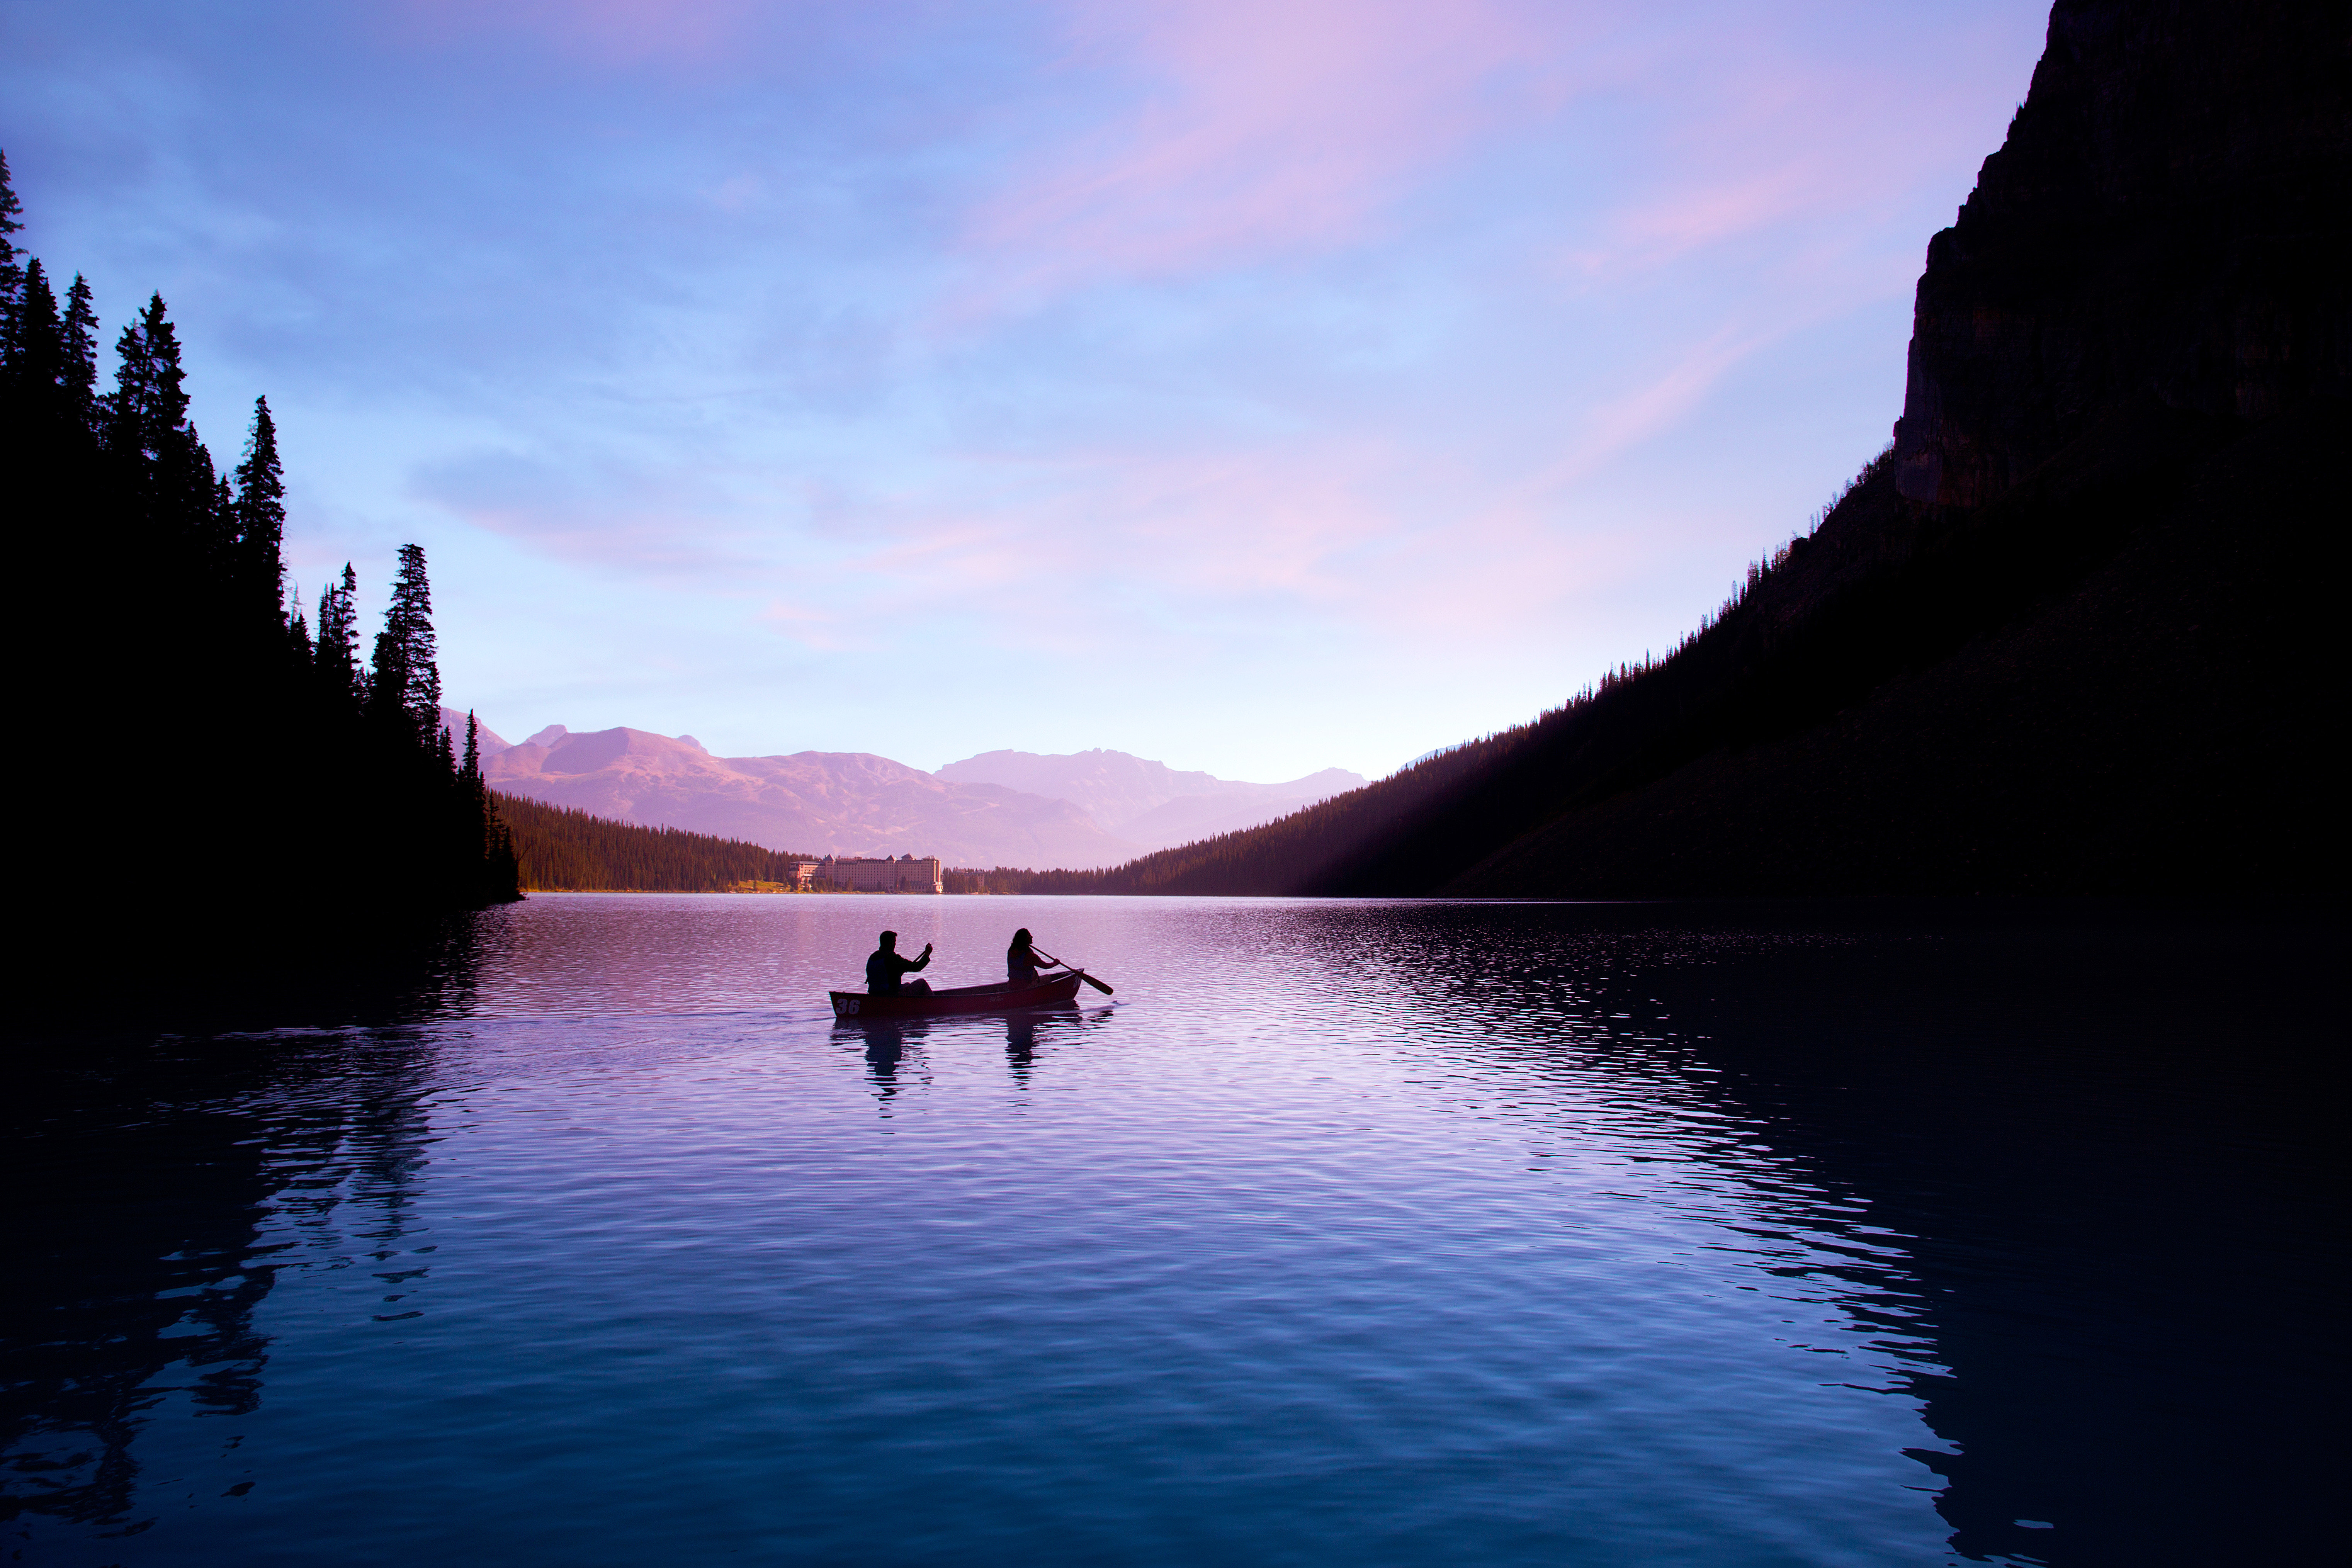 Adventure Natural wonders Resort Scenic views Sport water sky Boat Lake mountain River loch morning Sea dusk dawn Nature evening Sunset fjord surrounded clouds distance